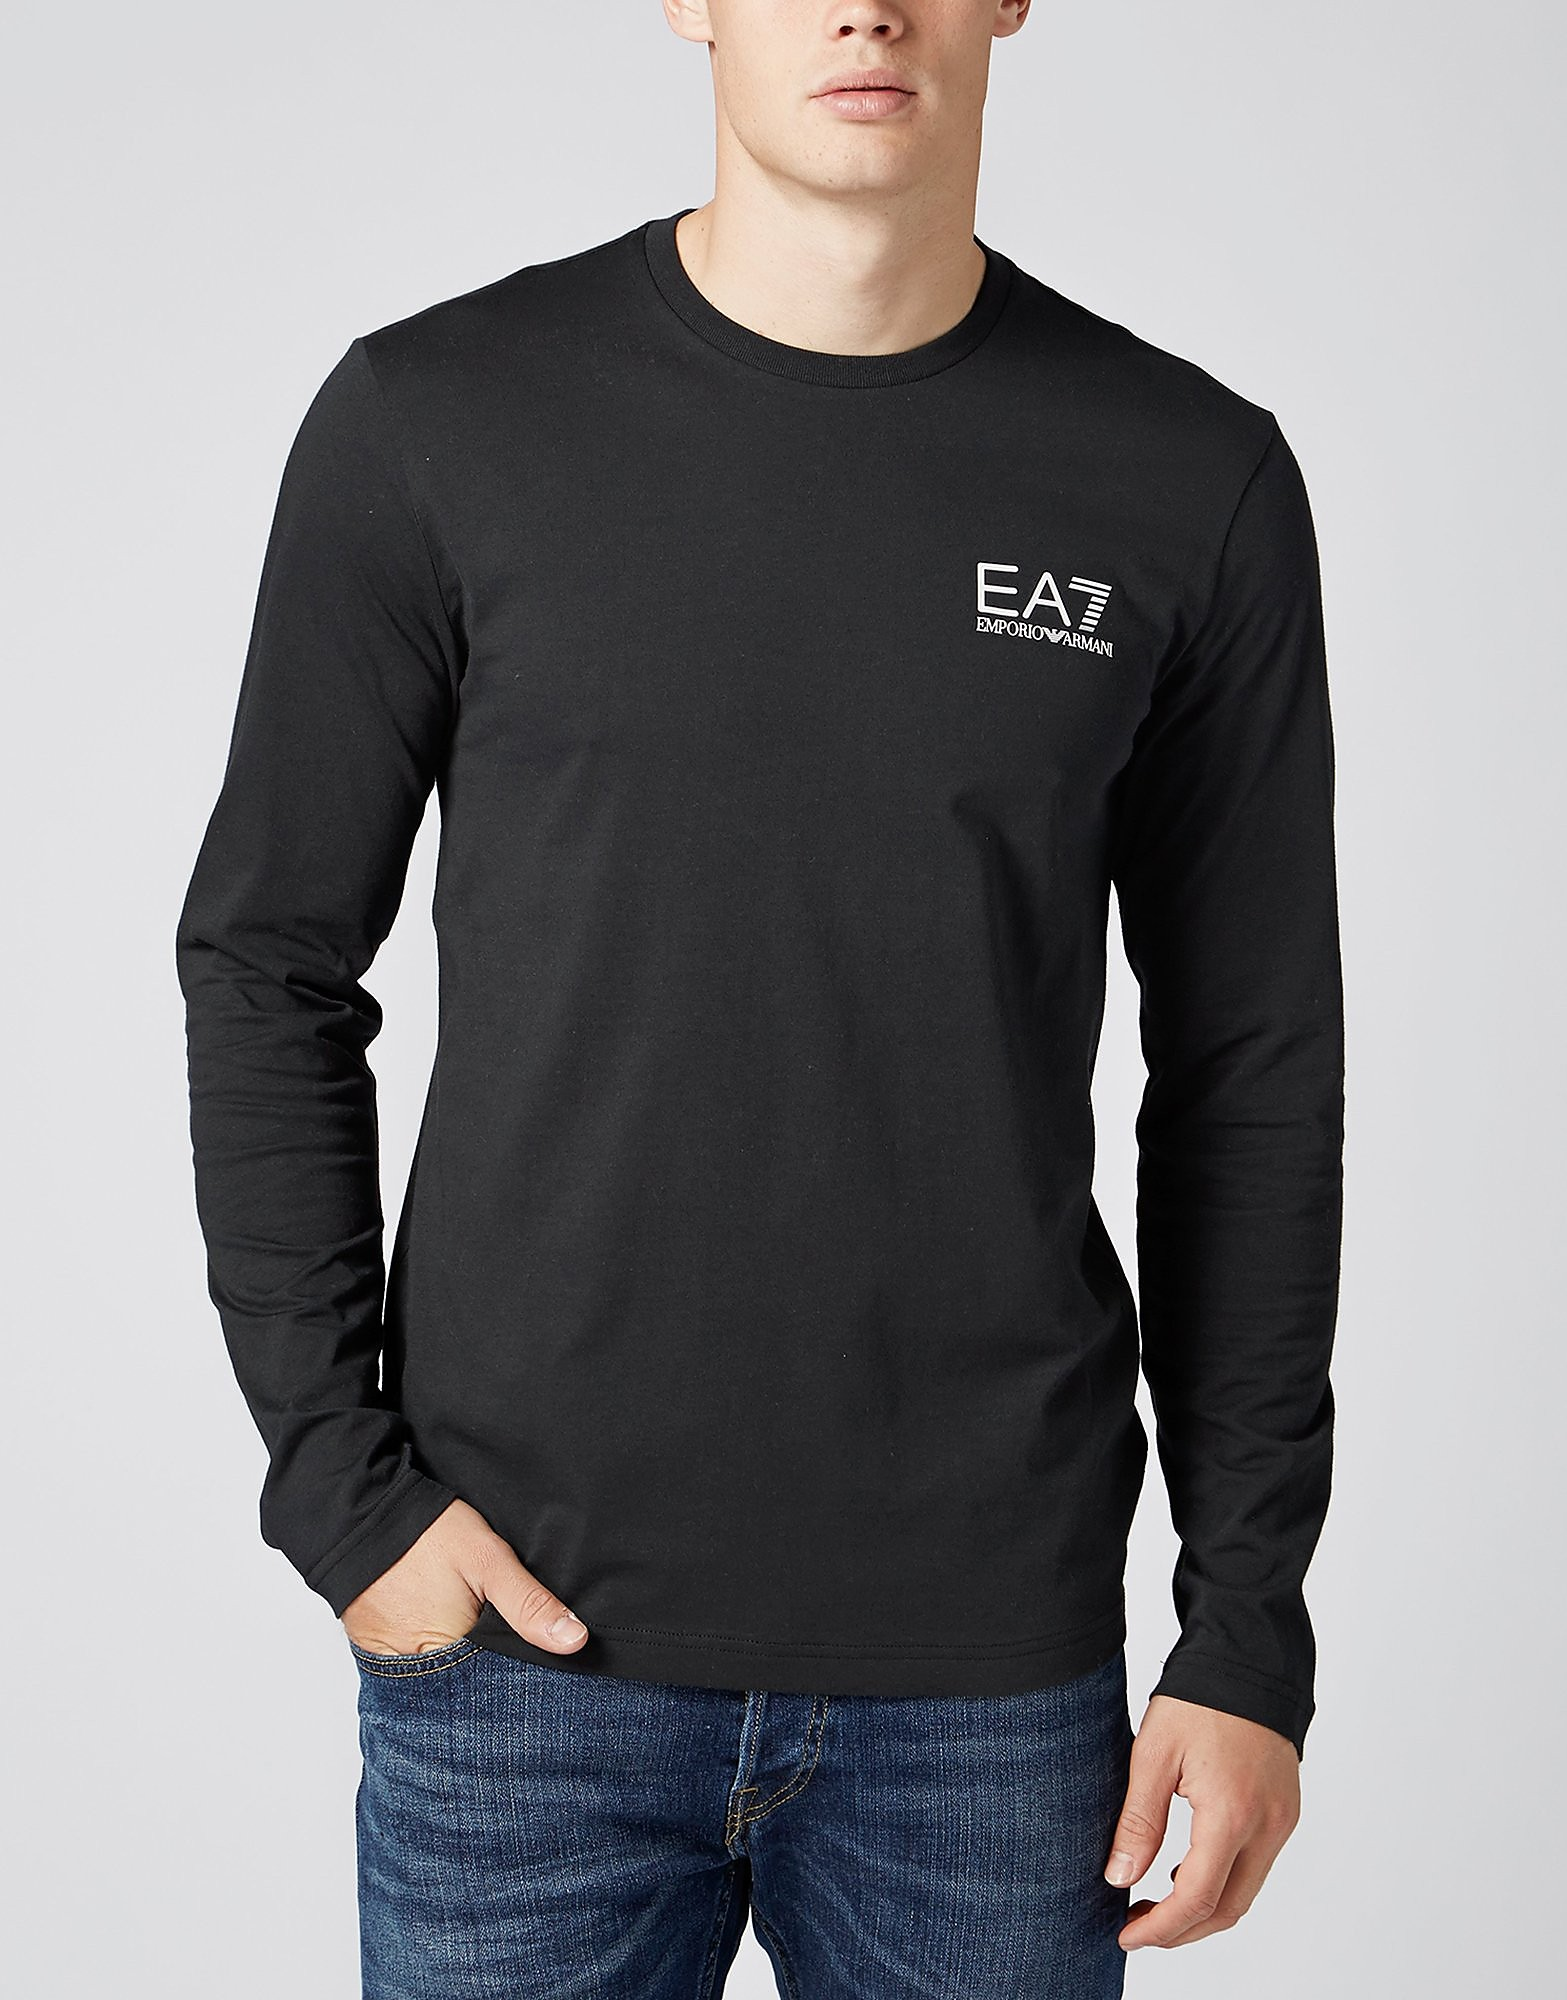 Emporio Armani EA7 Core ID Long Sleeved T-Shirt